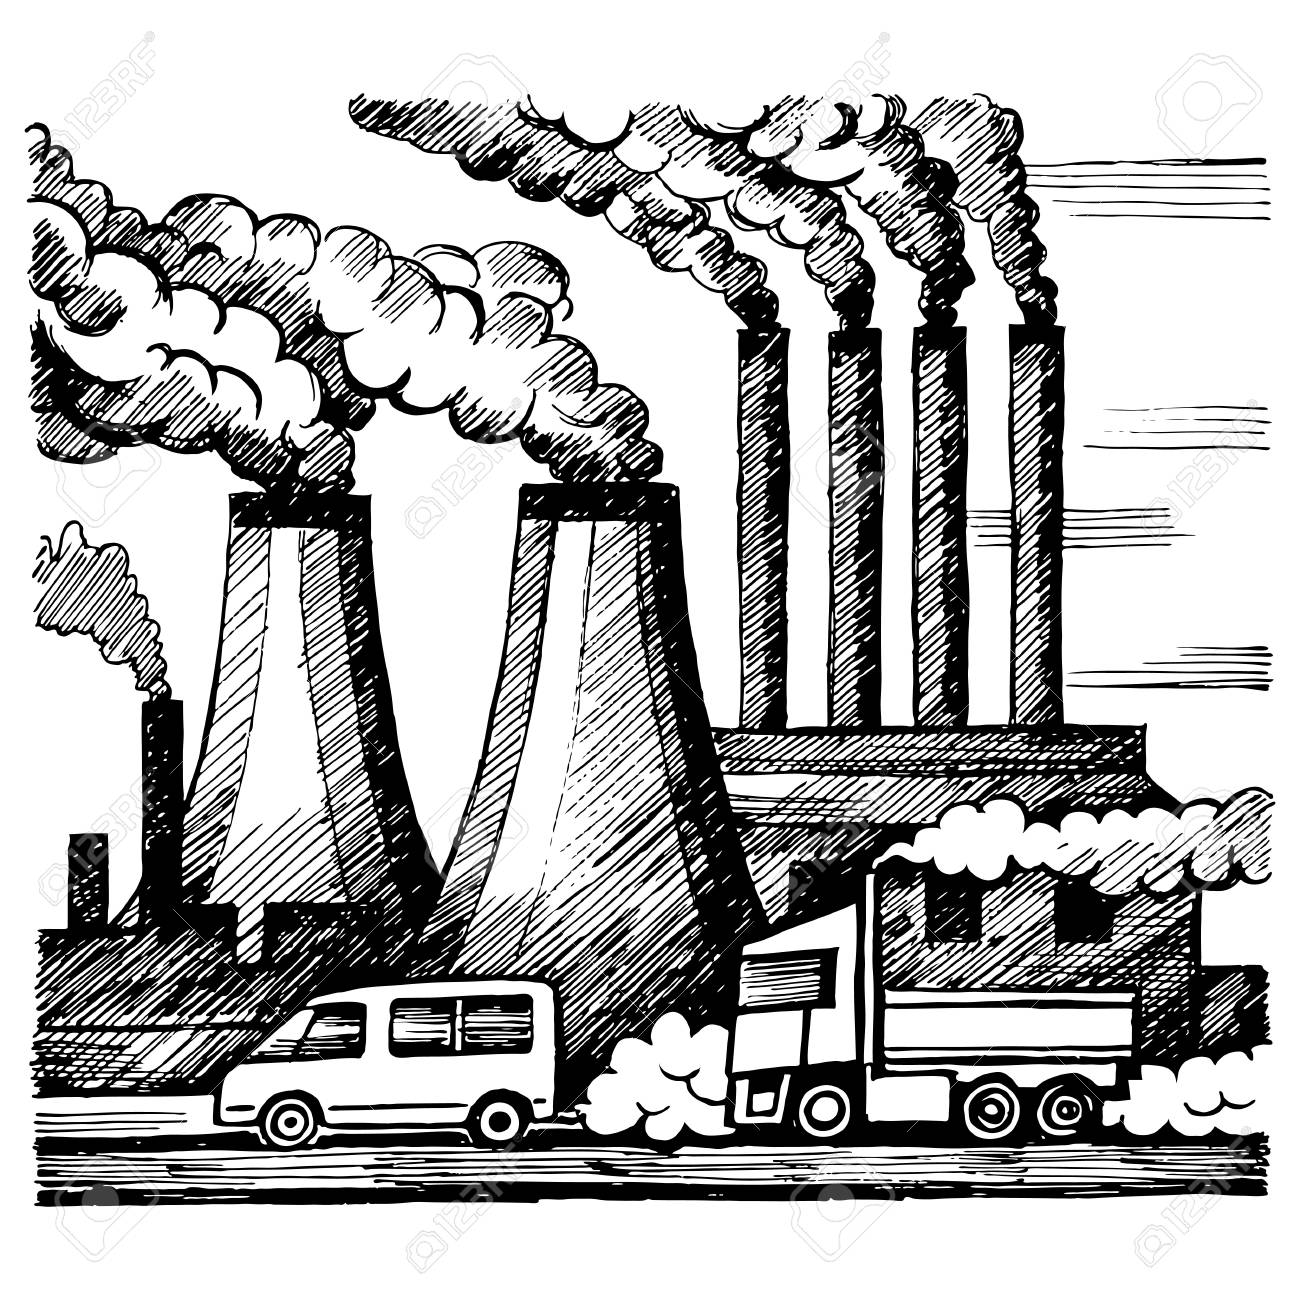 Pollution Drawing At Getdrawings